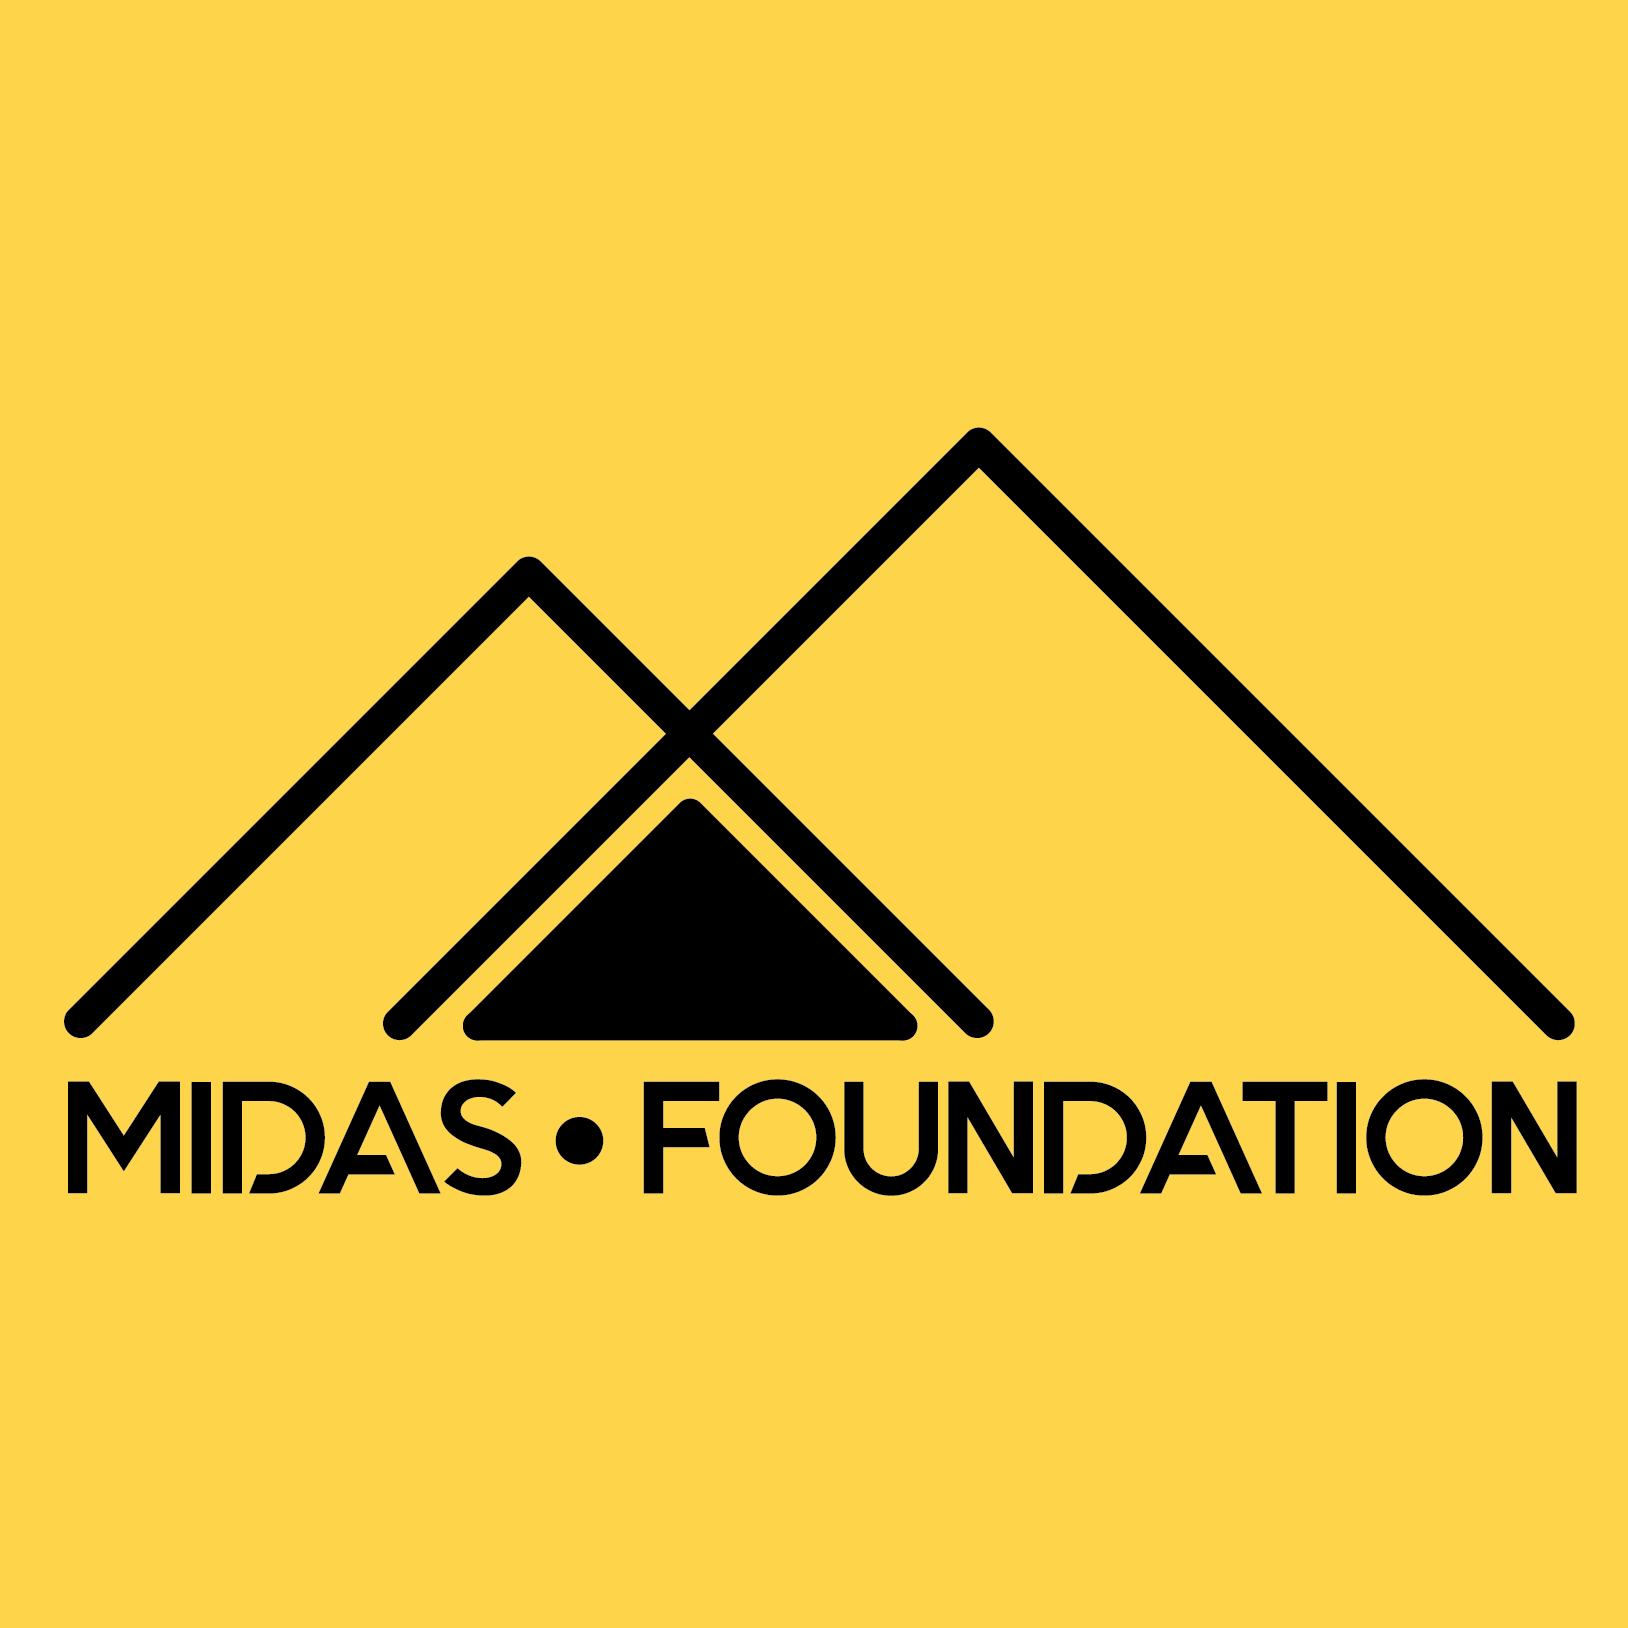 Midas Foundation full logo square (black on yellow)